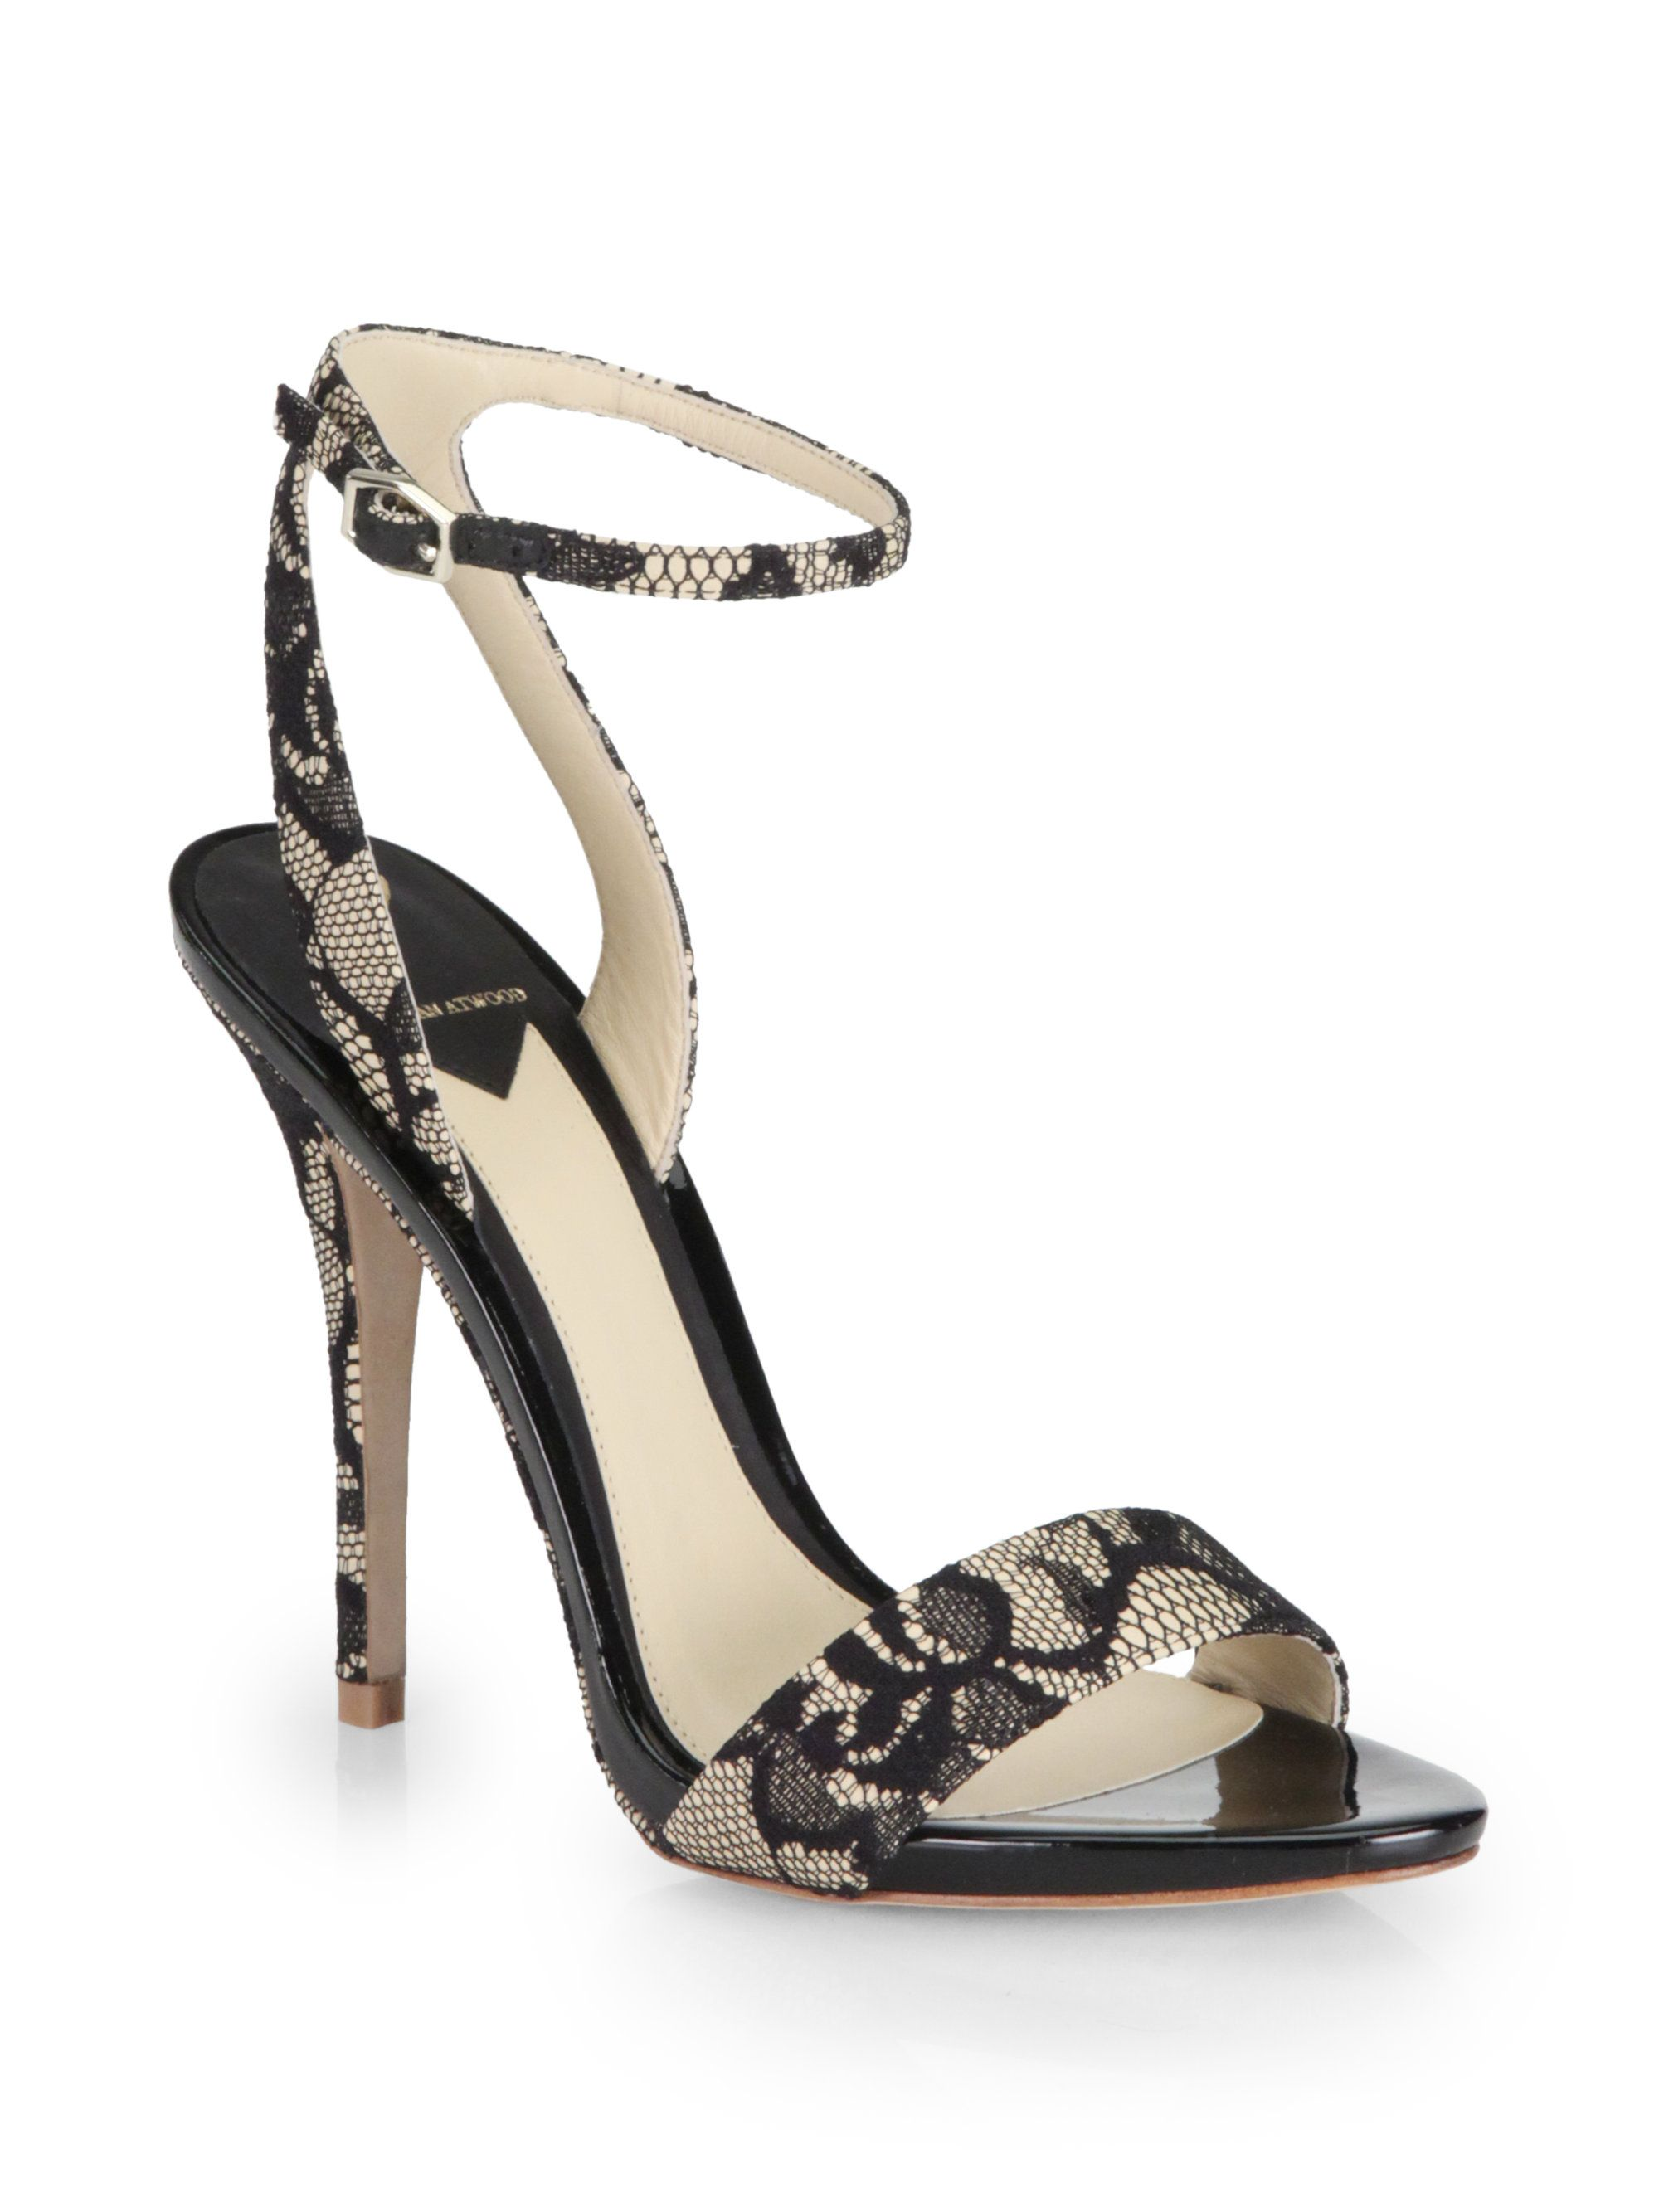 B Brian Atwood Ankle Strap Sandals discount with paypal pre order online 6ps4oj